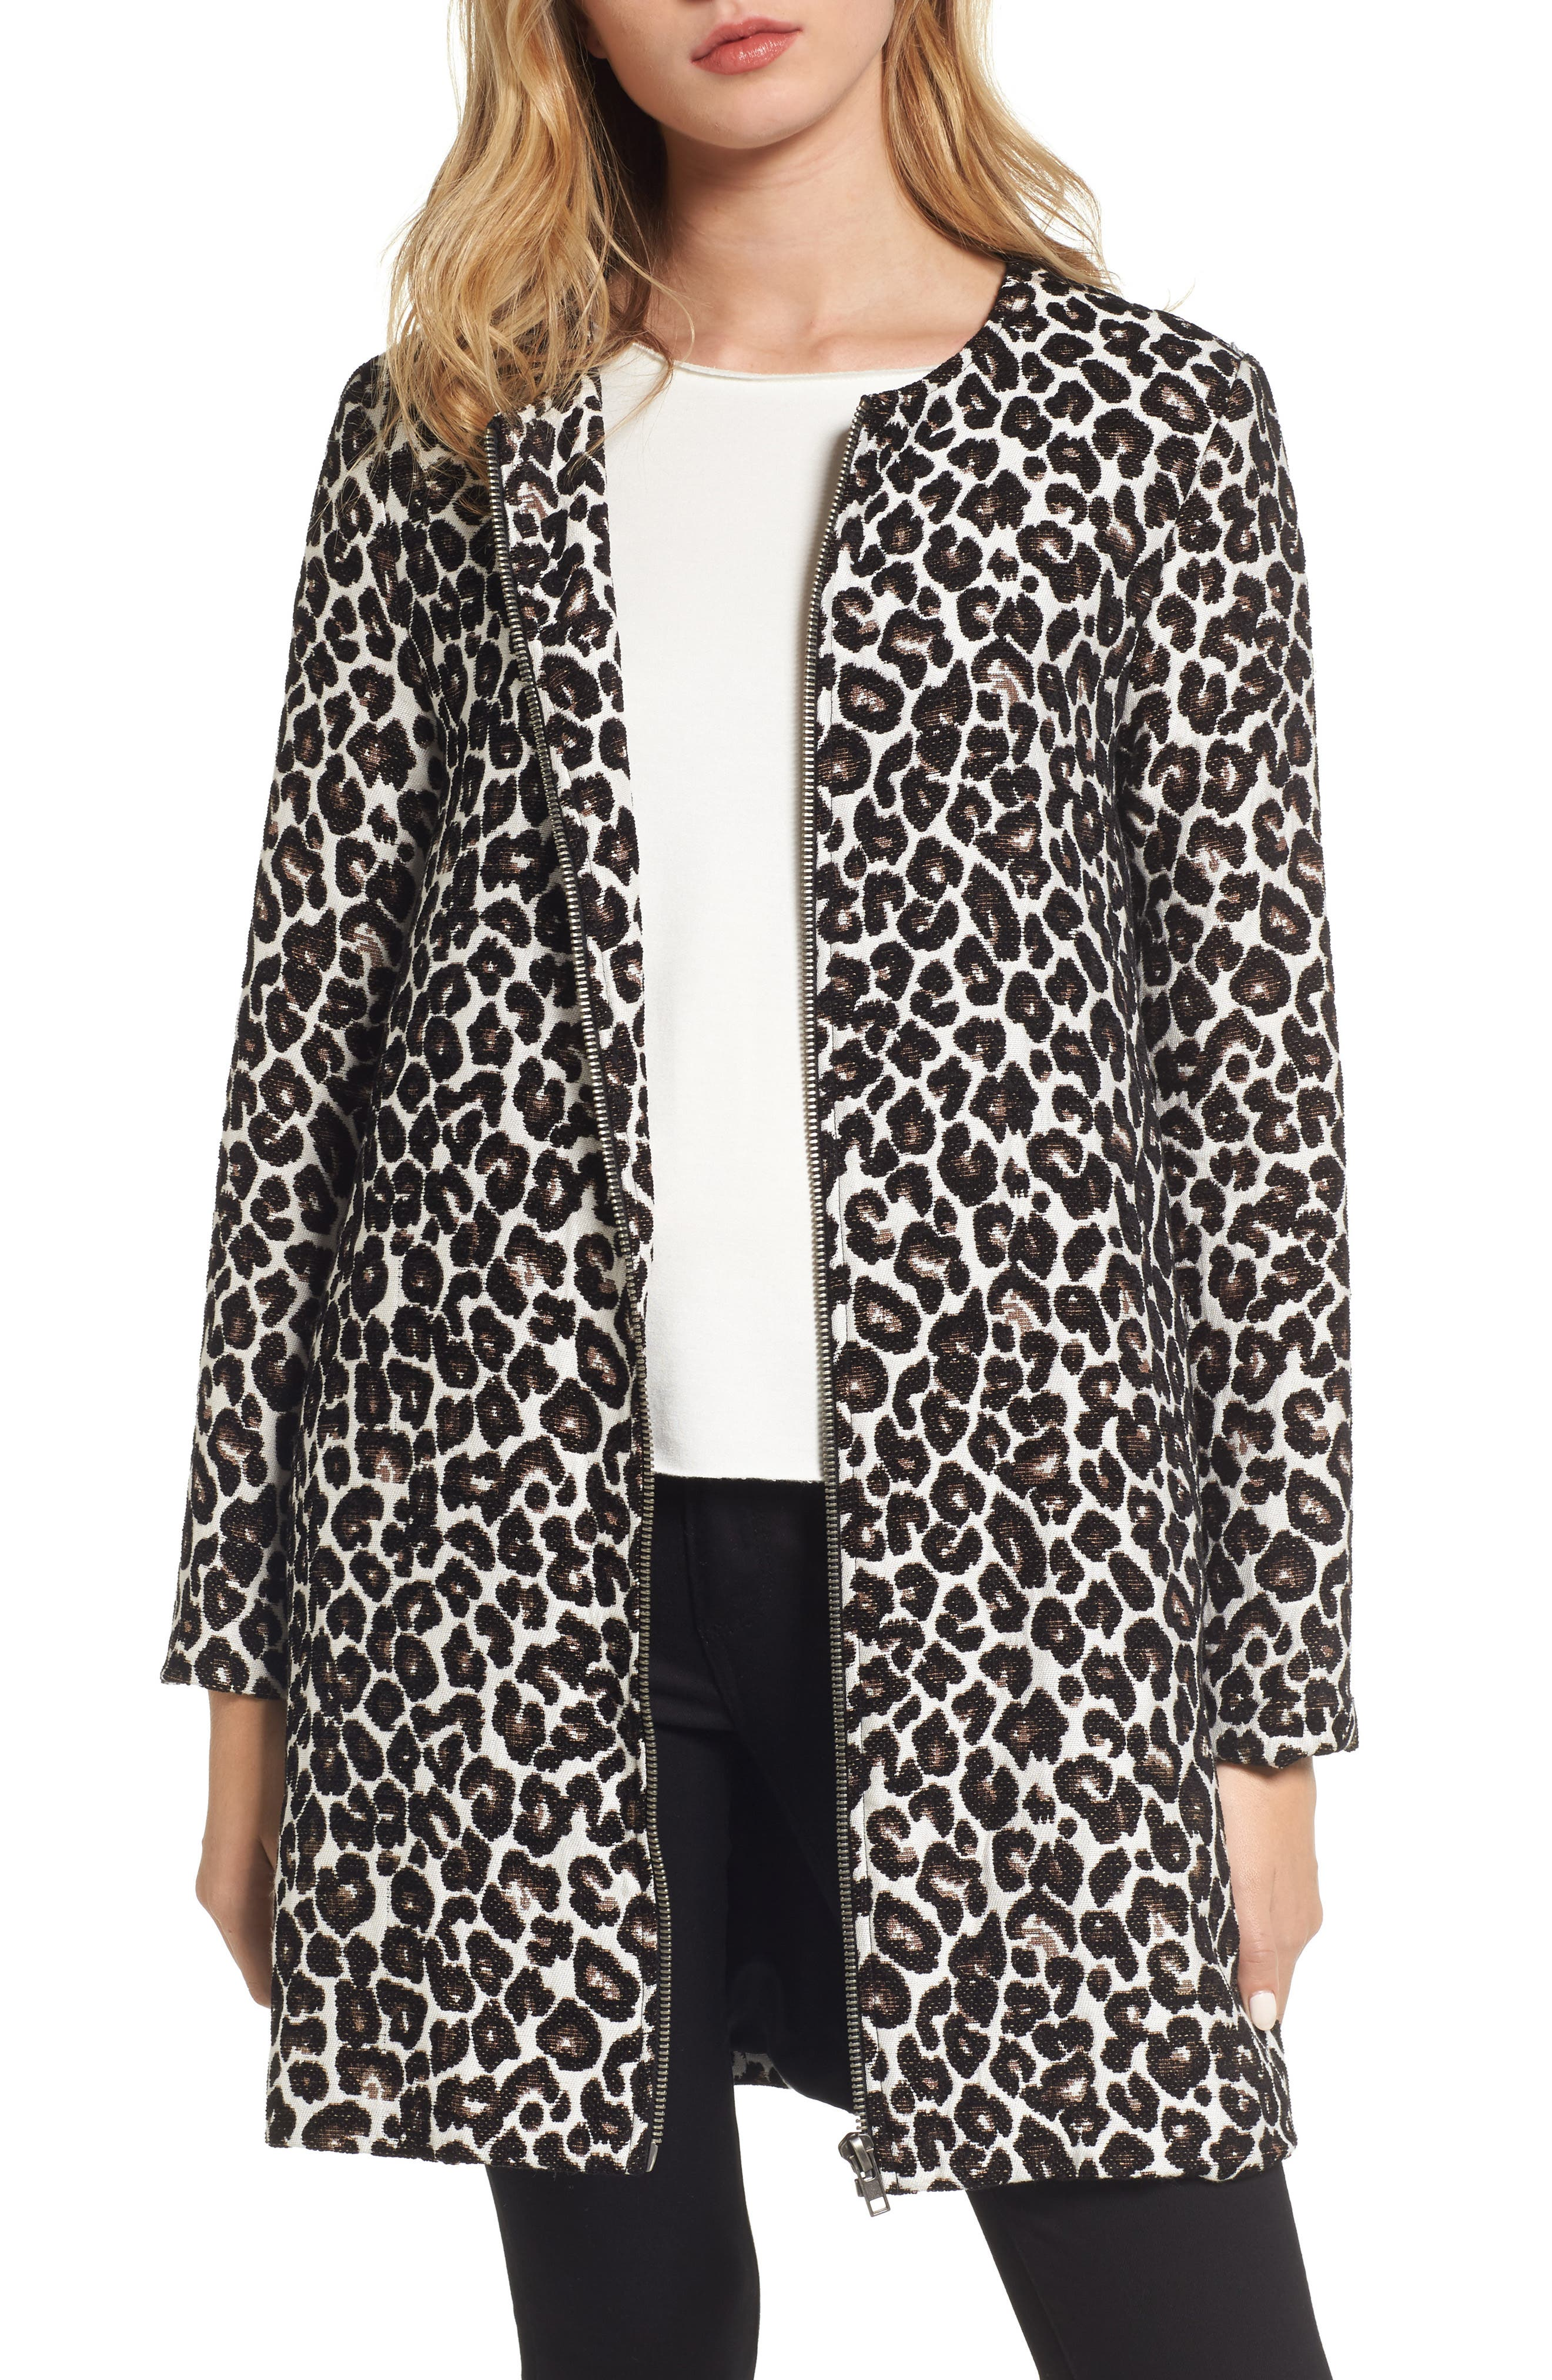 Main Image - cupcakes and cashmere Adeltia Leopard Print Jacket